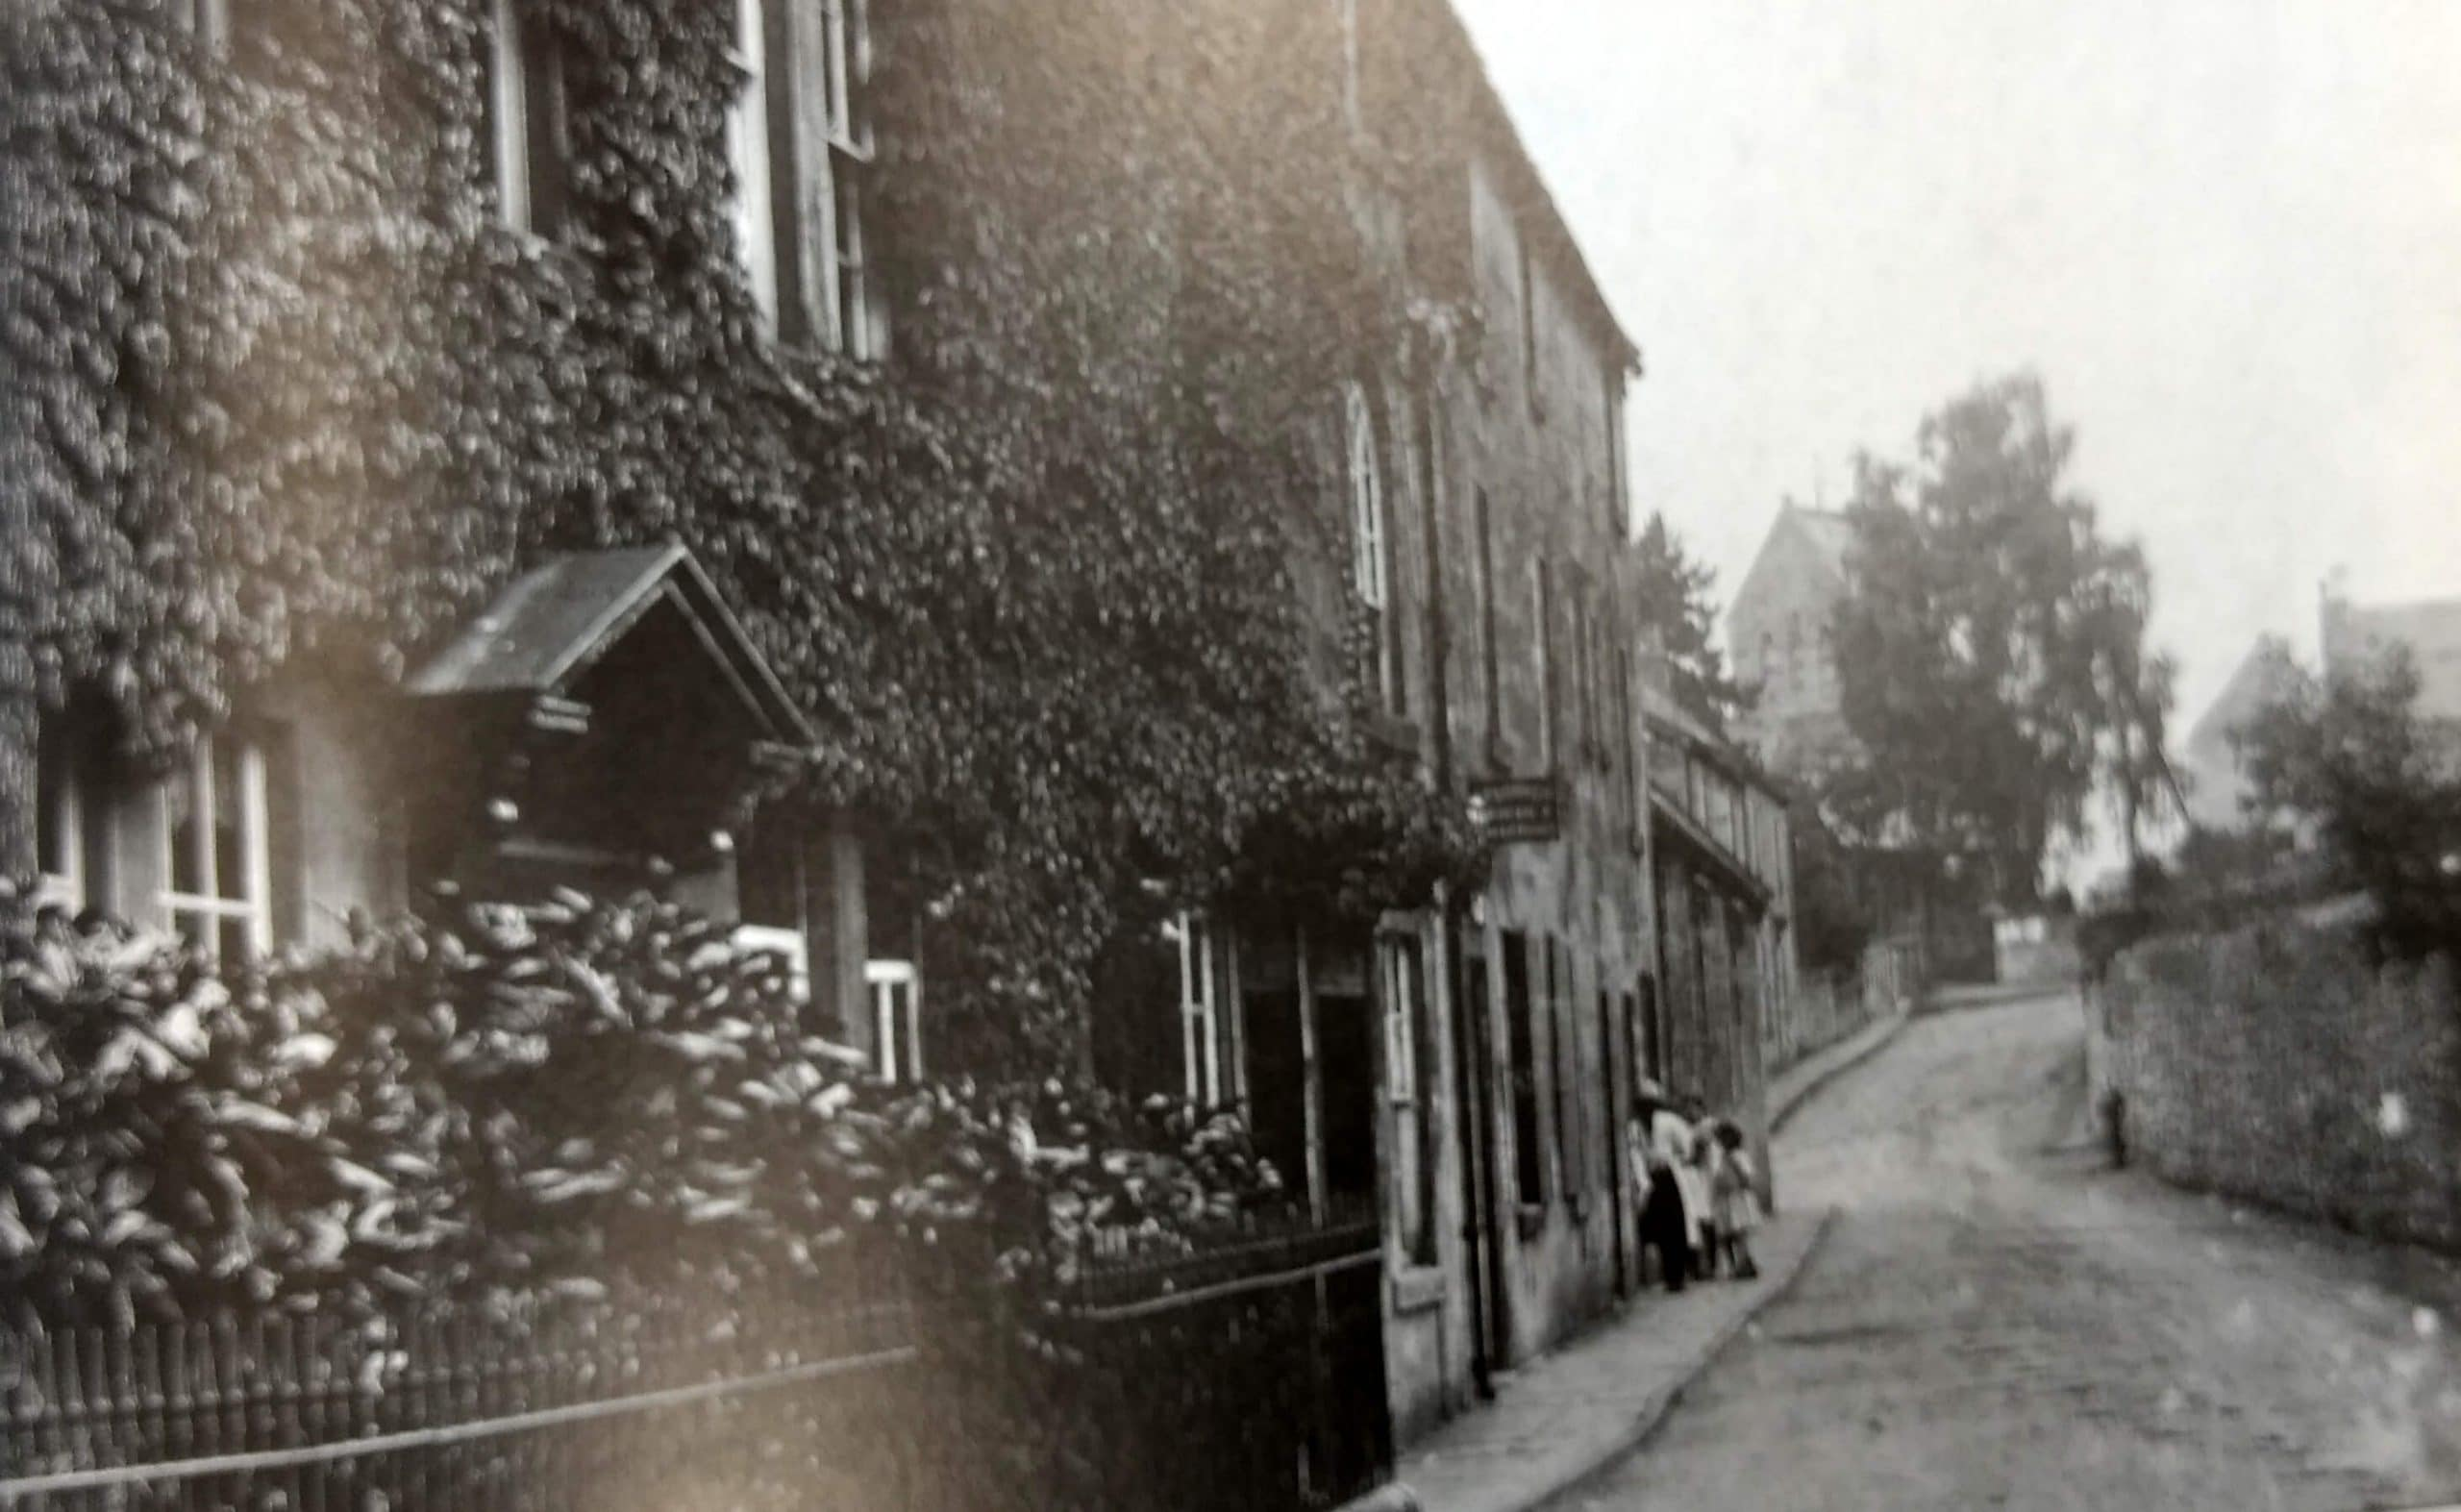 Monkton Combe about 1920